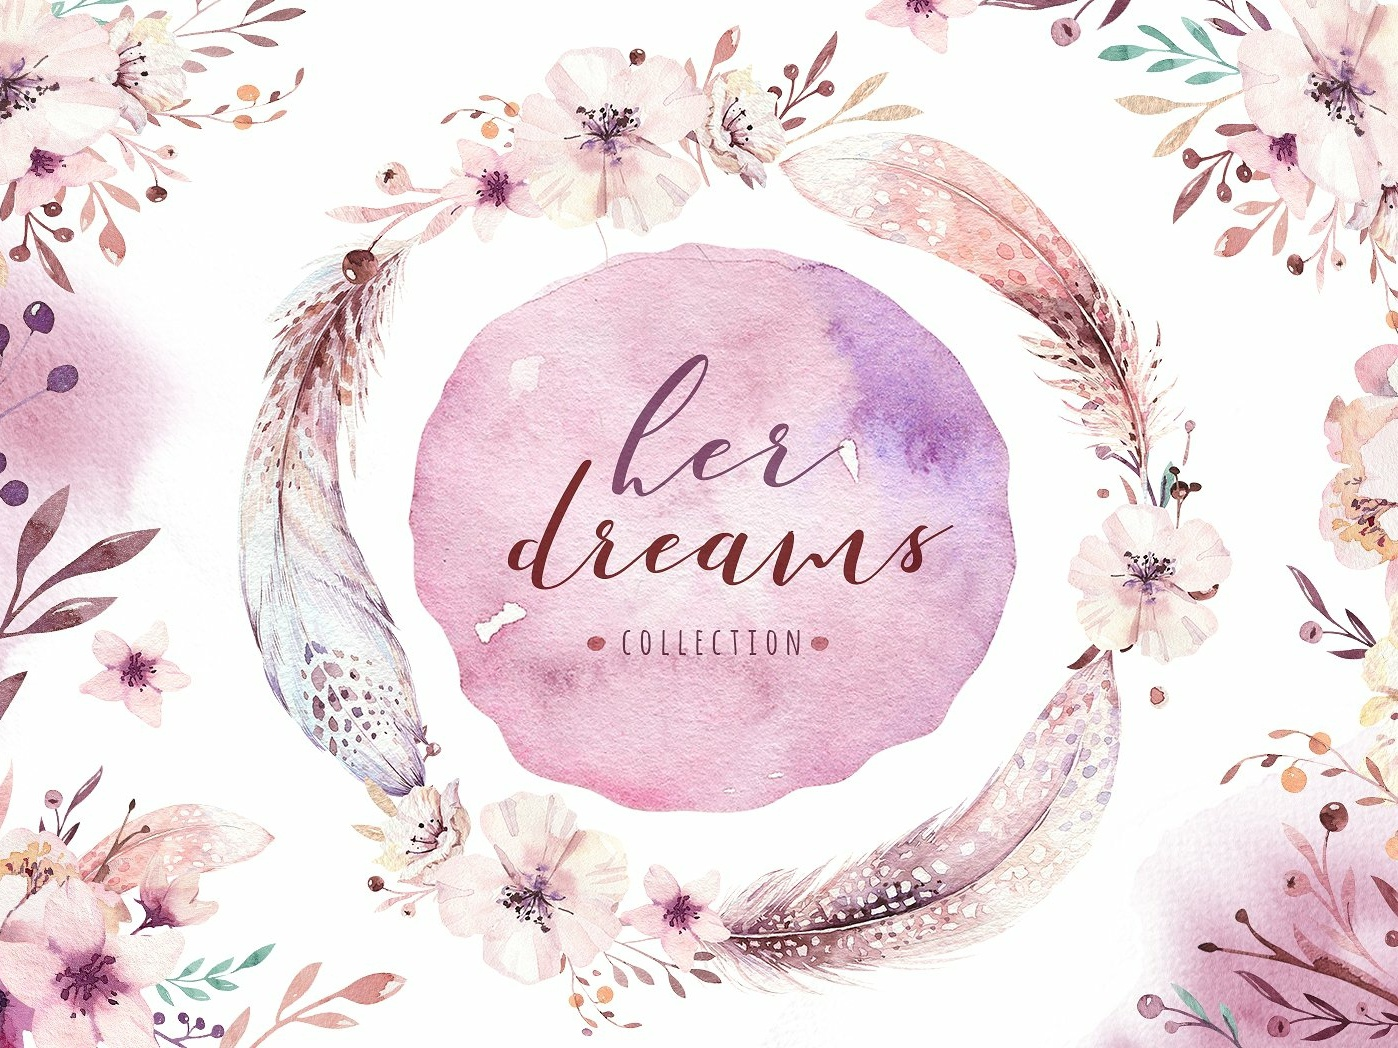 her dreams bohemian collection by graphics collection on dribbble her dreams bohemian collection by